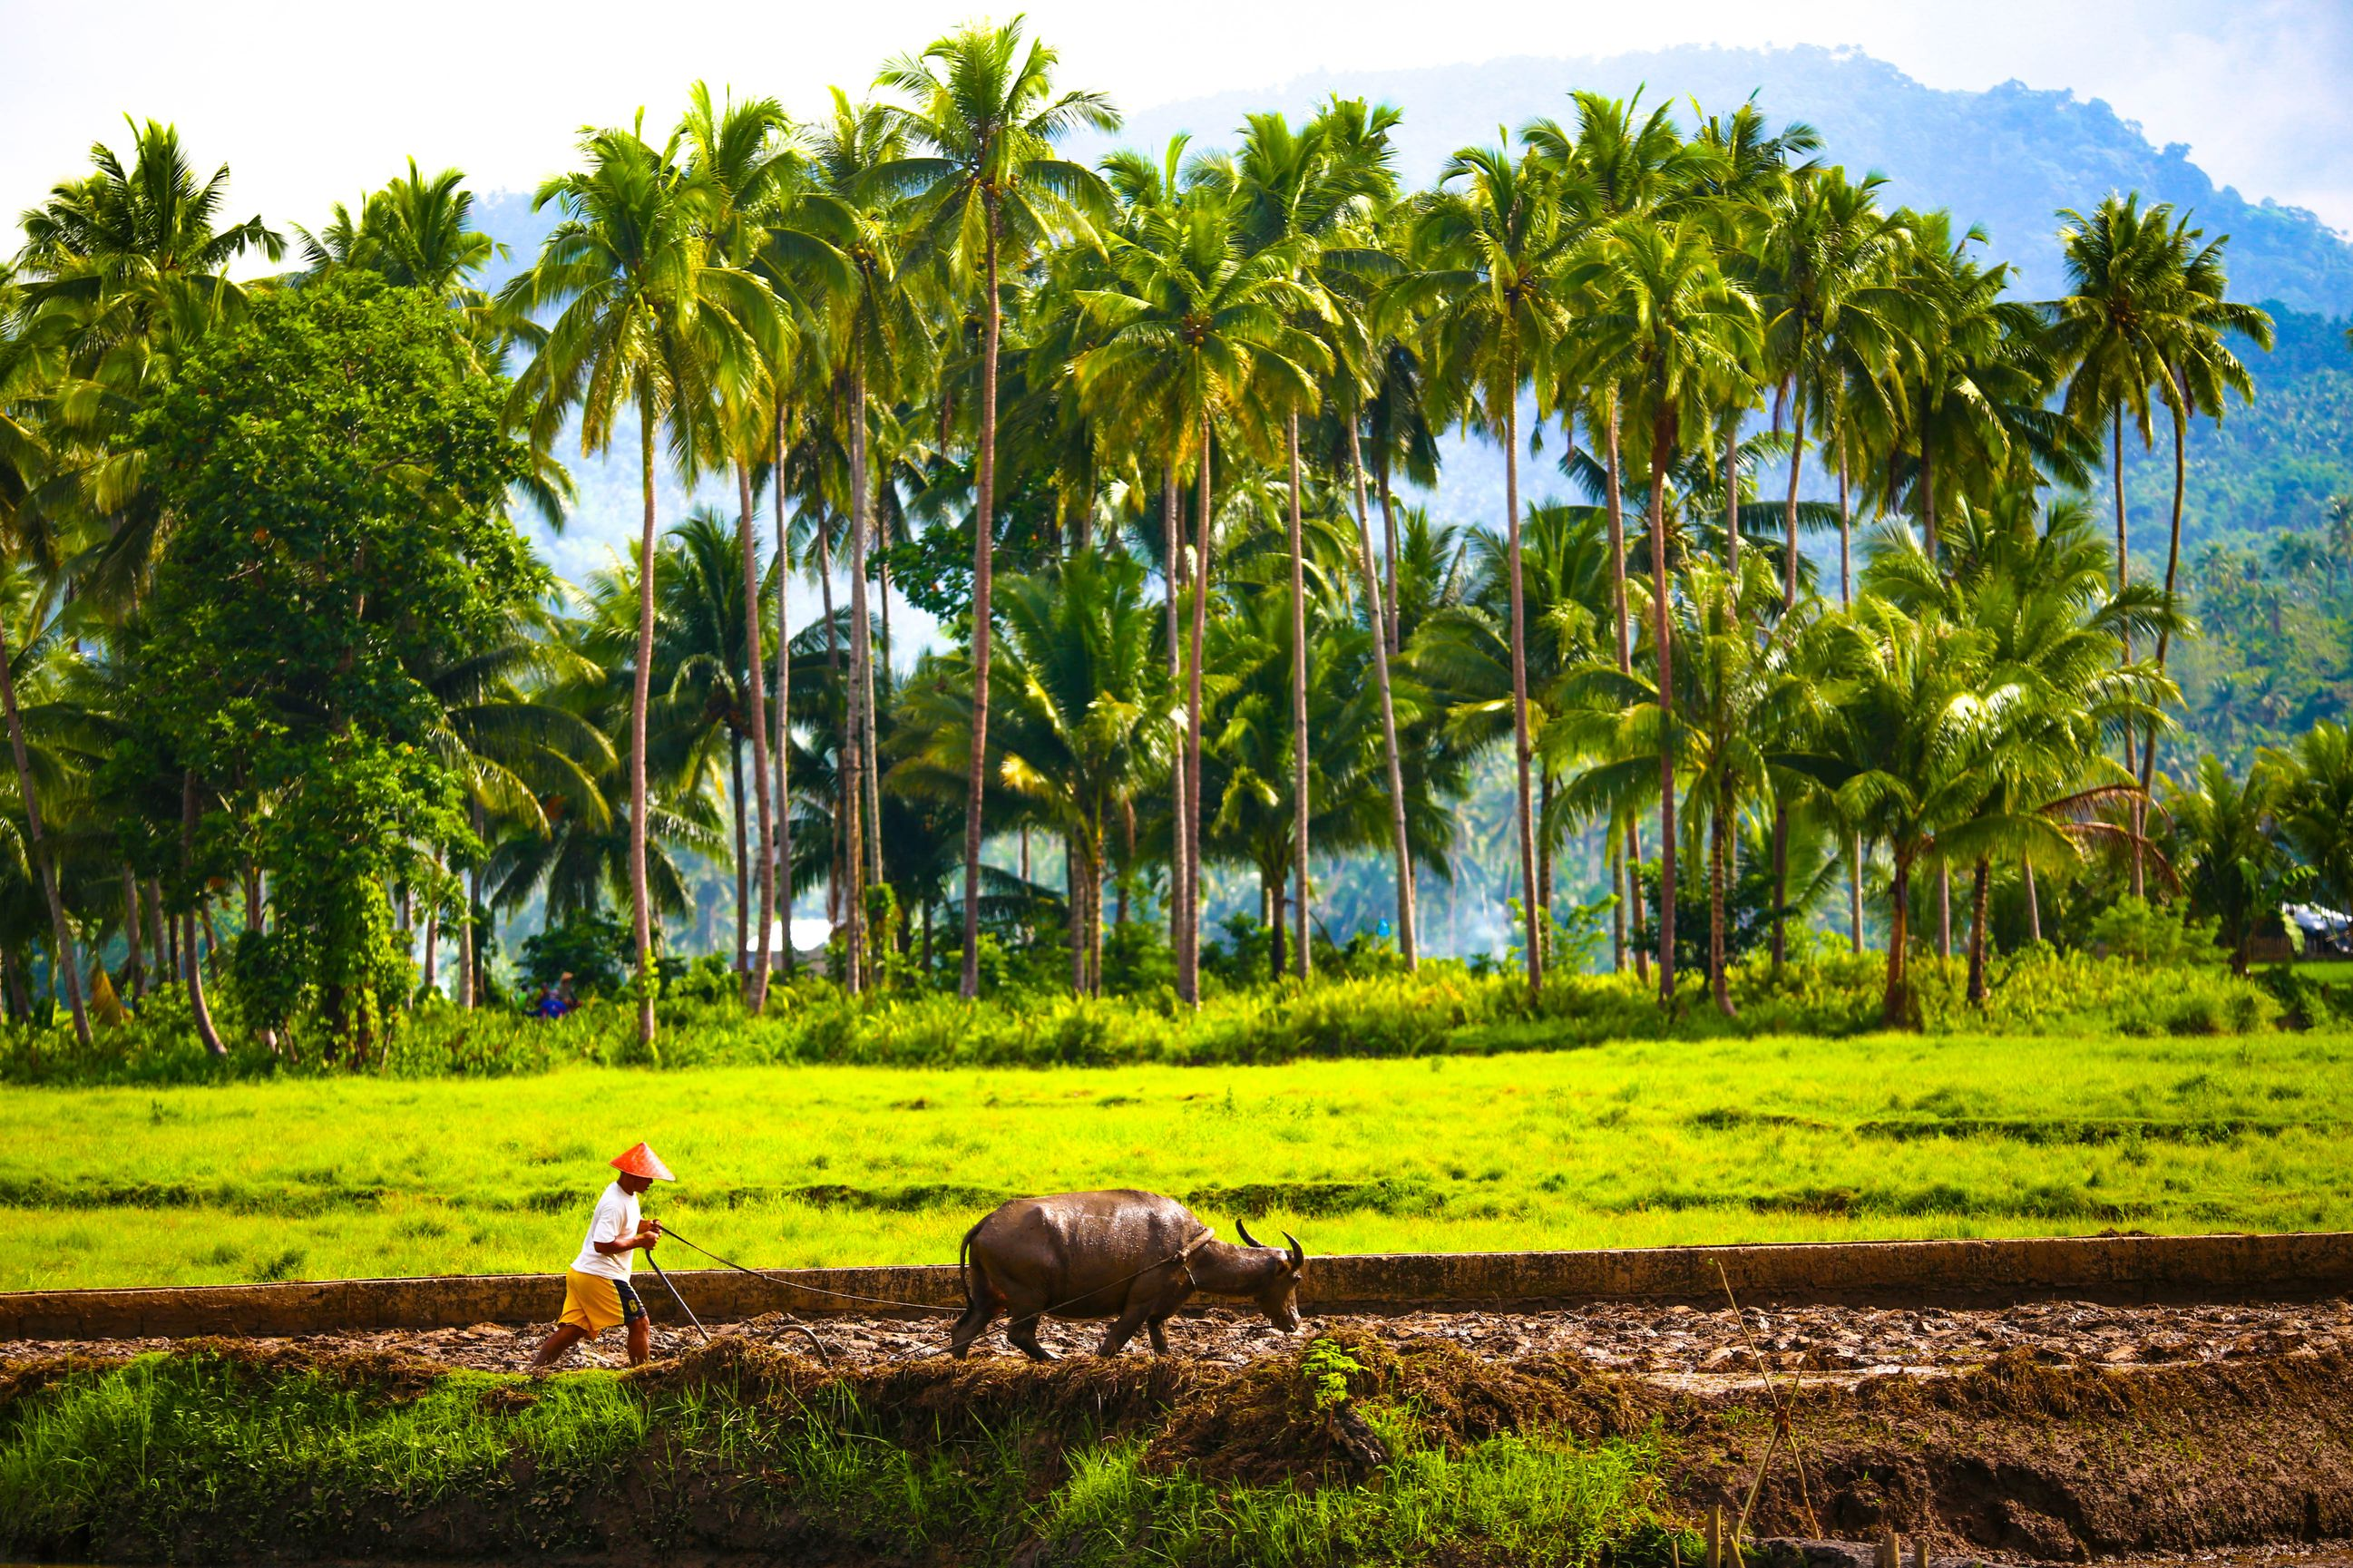 A Filipino farmer and his carabao tilling a field with coconut palms in the background